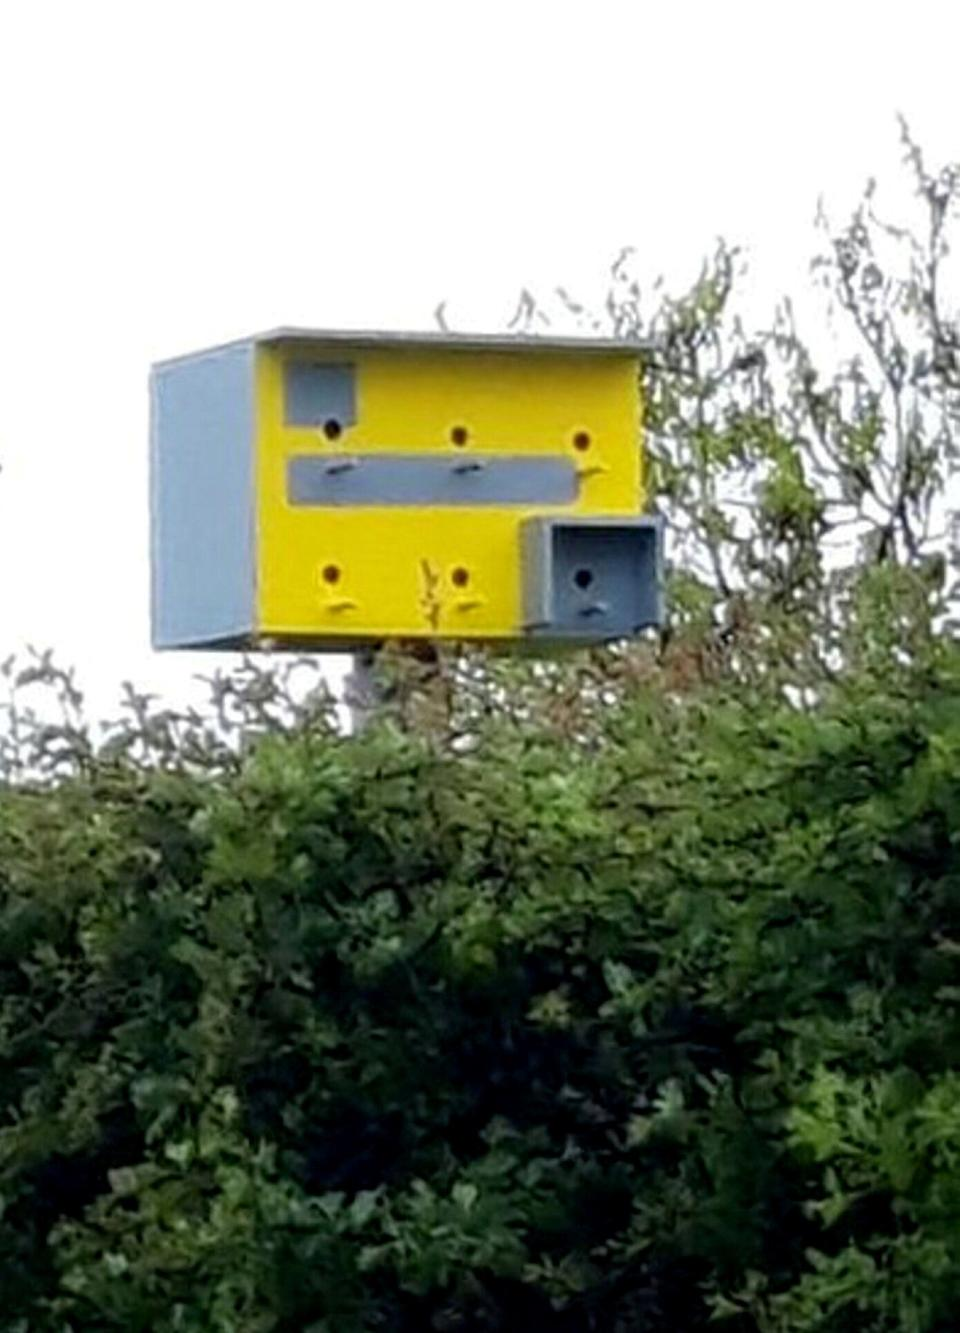 Motorists are being tricked by a fake speed camera - which is actually a well disguised bird box in Kilkhampton, Devon. (SWNS)